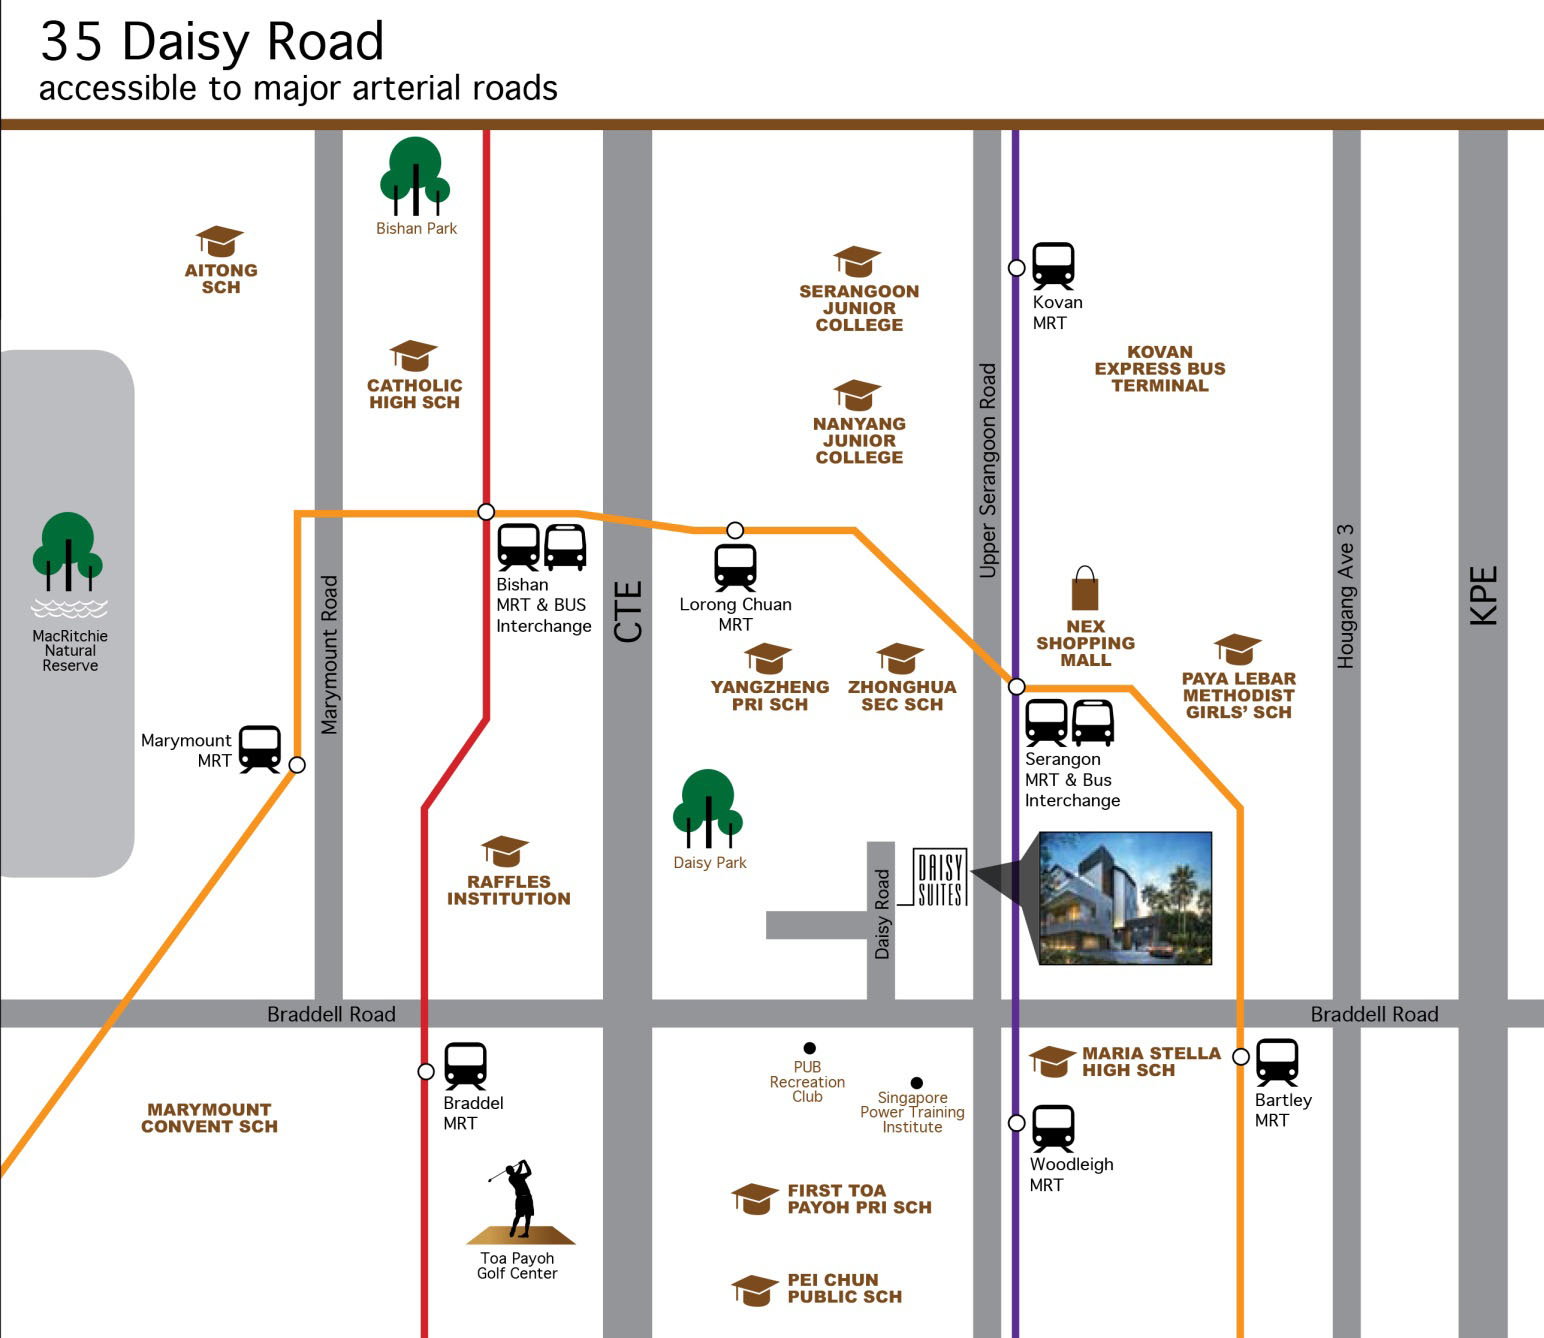 daisy suites site location